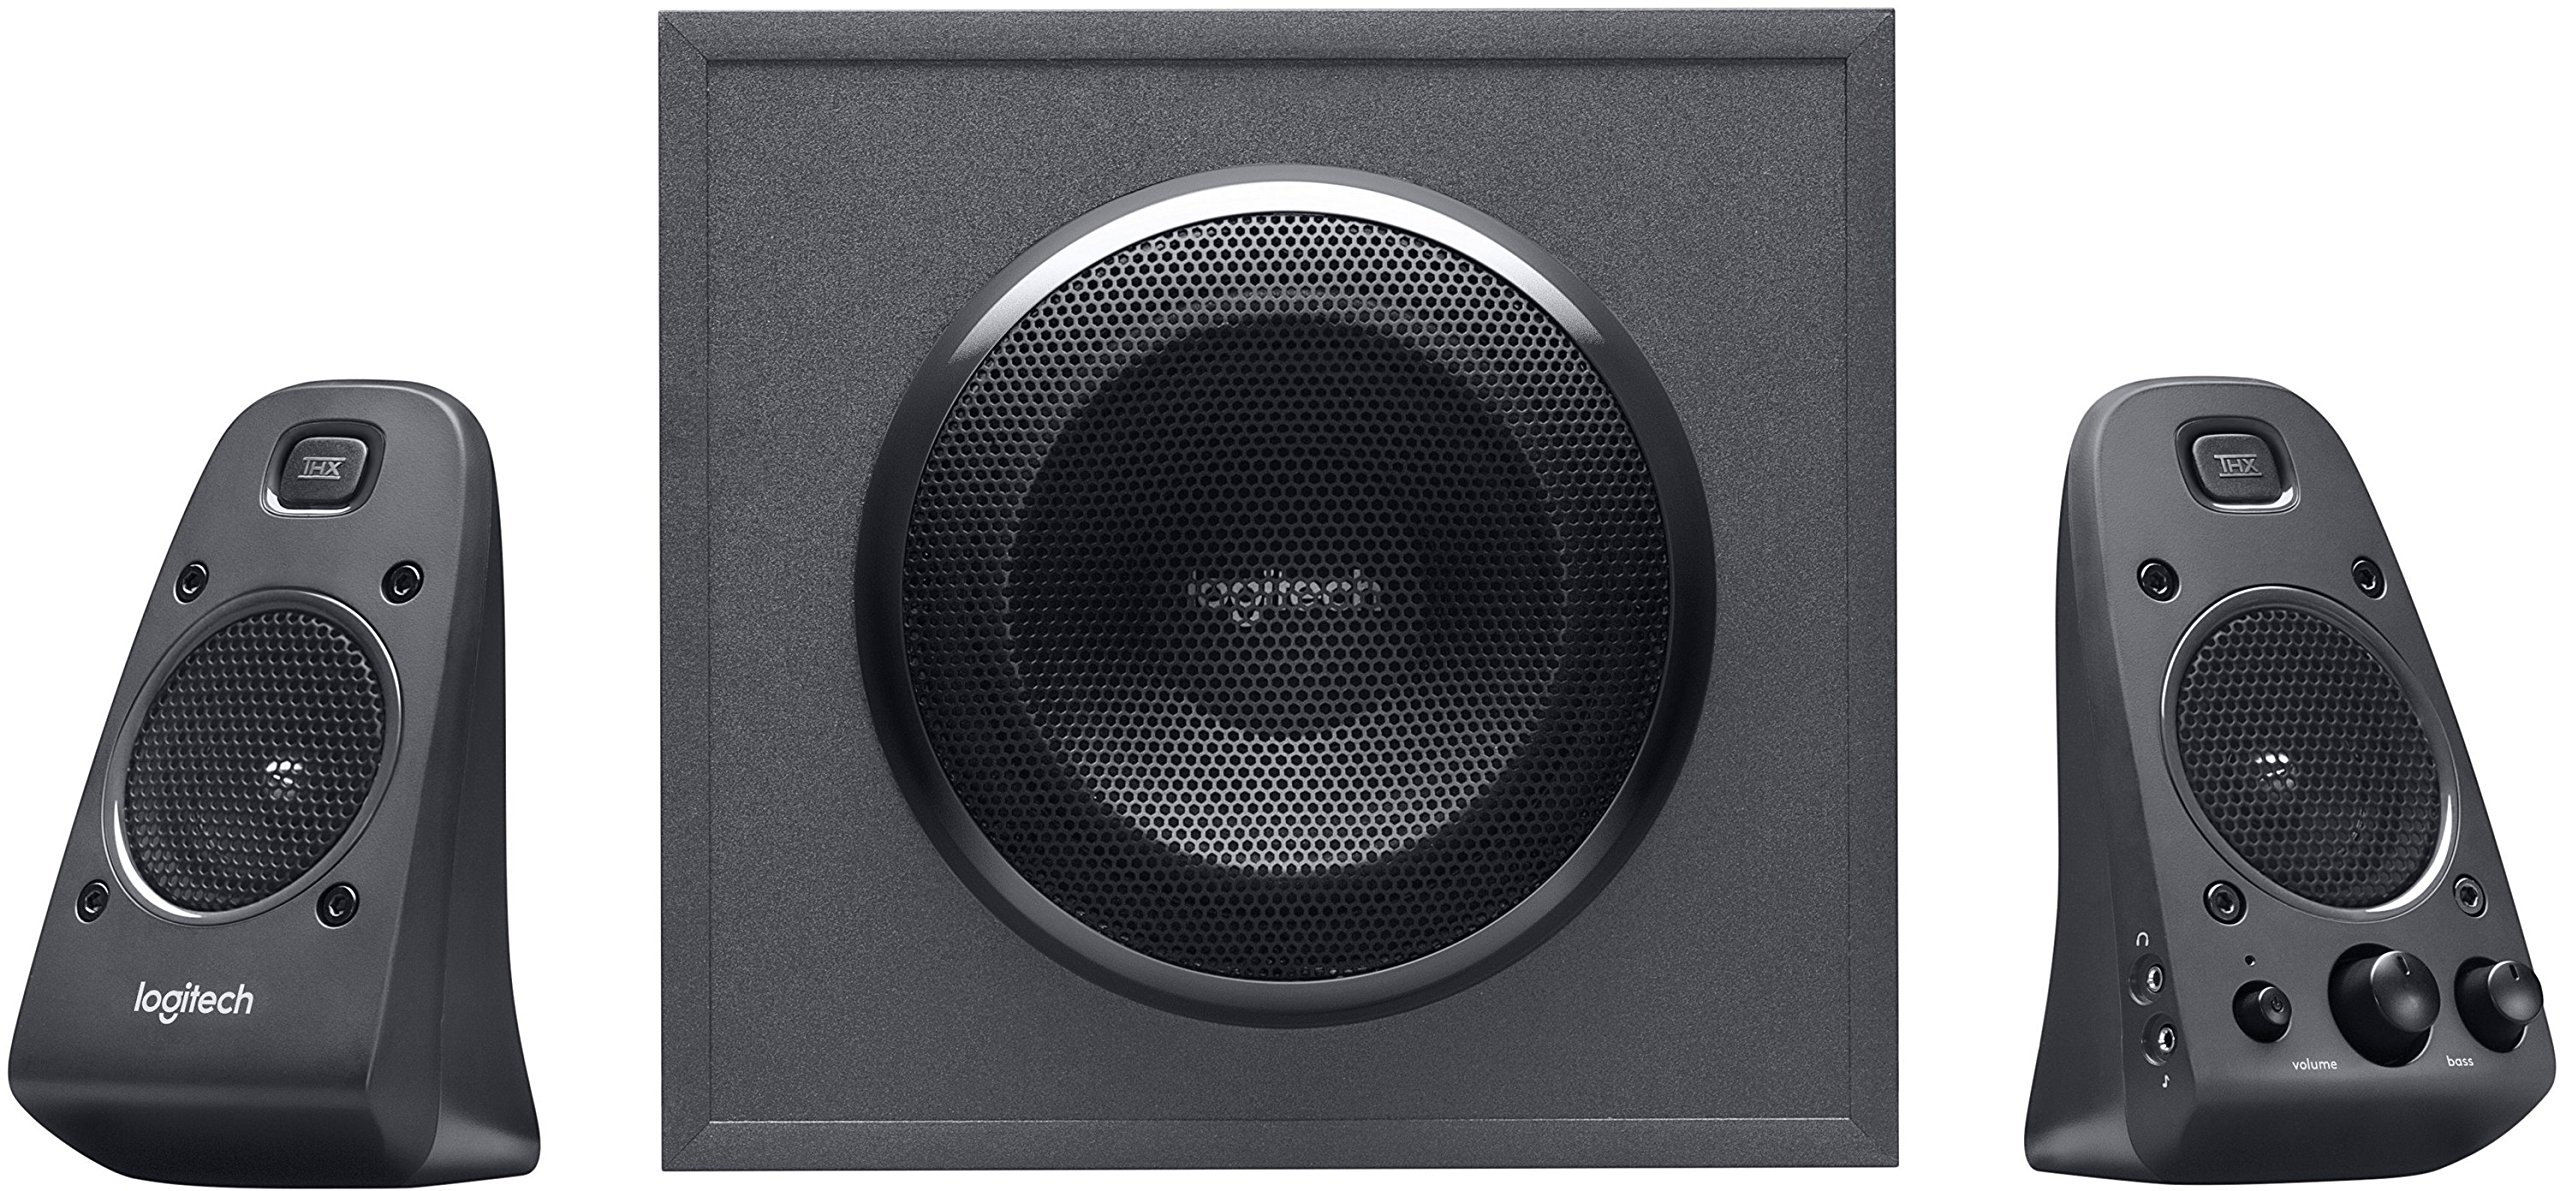 Logitech Z625 Powerful THX Sound 2.1 Speaker System for TVs, Game Consoles and Computers by Logitech